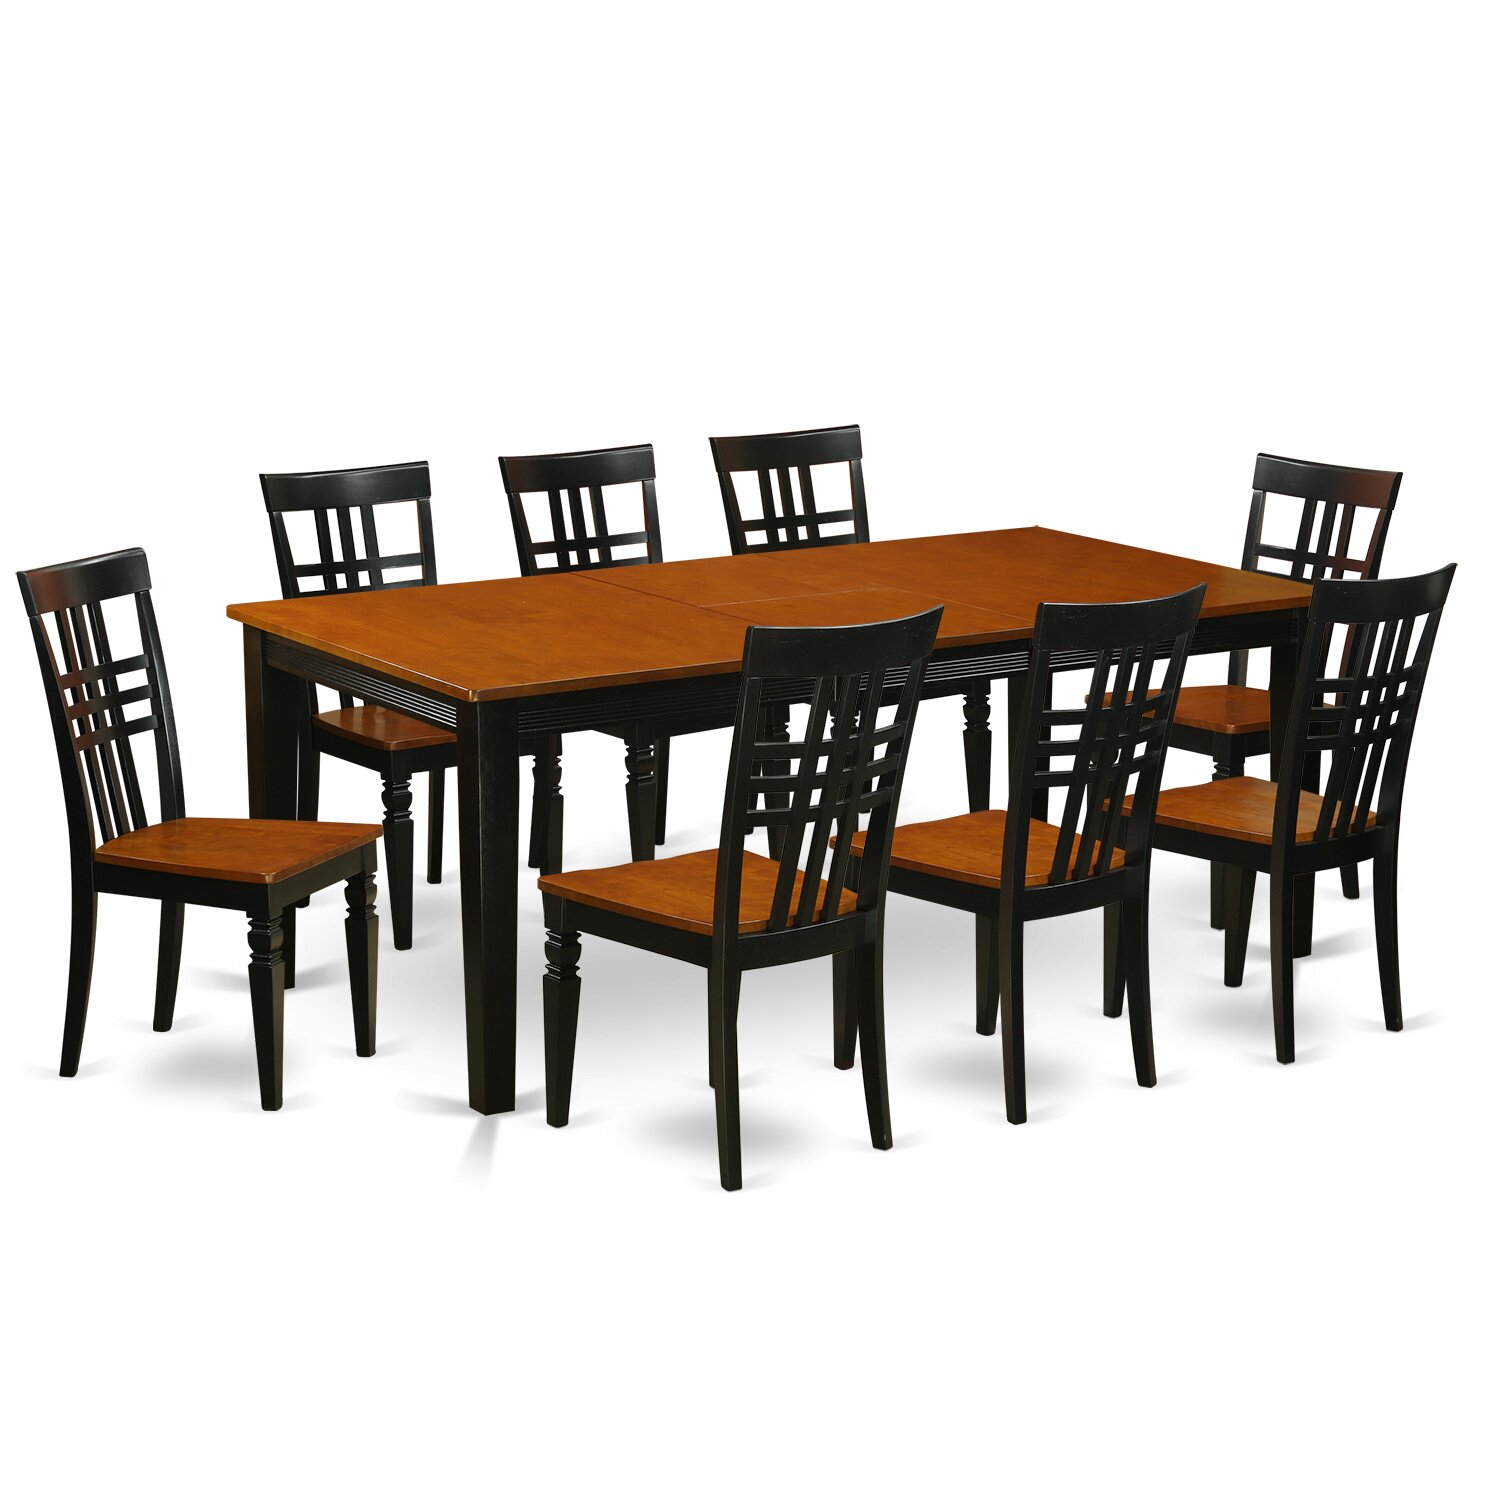 East West 9 Piece Dining Set